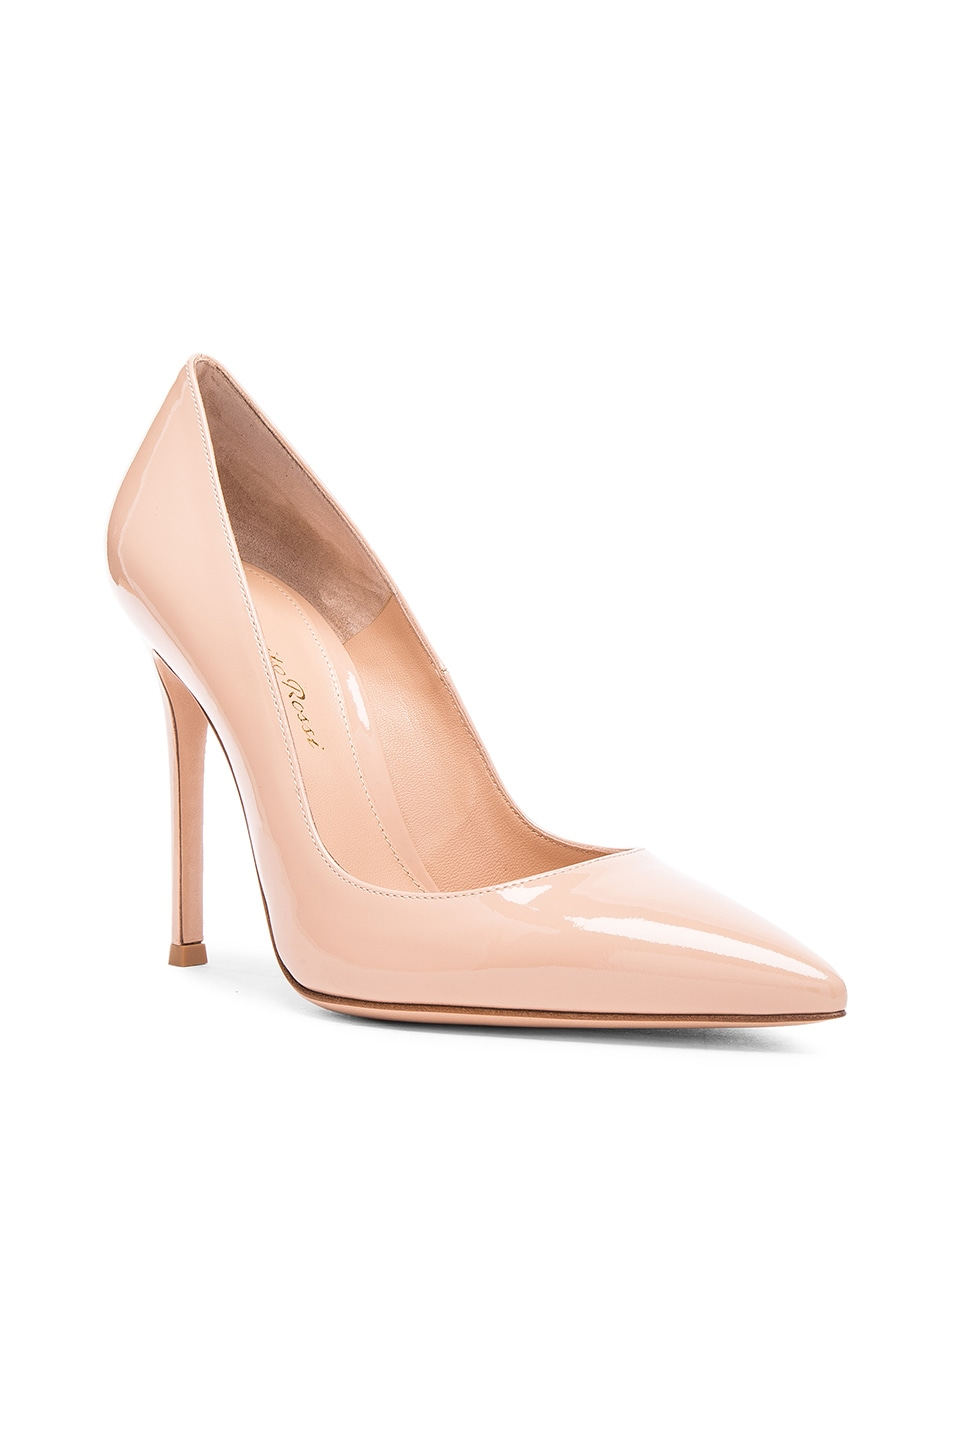 Image 2 of Gianvito Rossi Patent Leather Gianvito Pumps in Nude